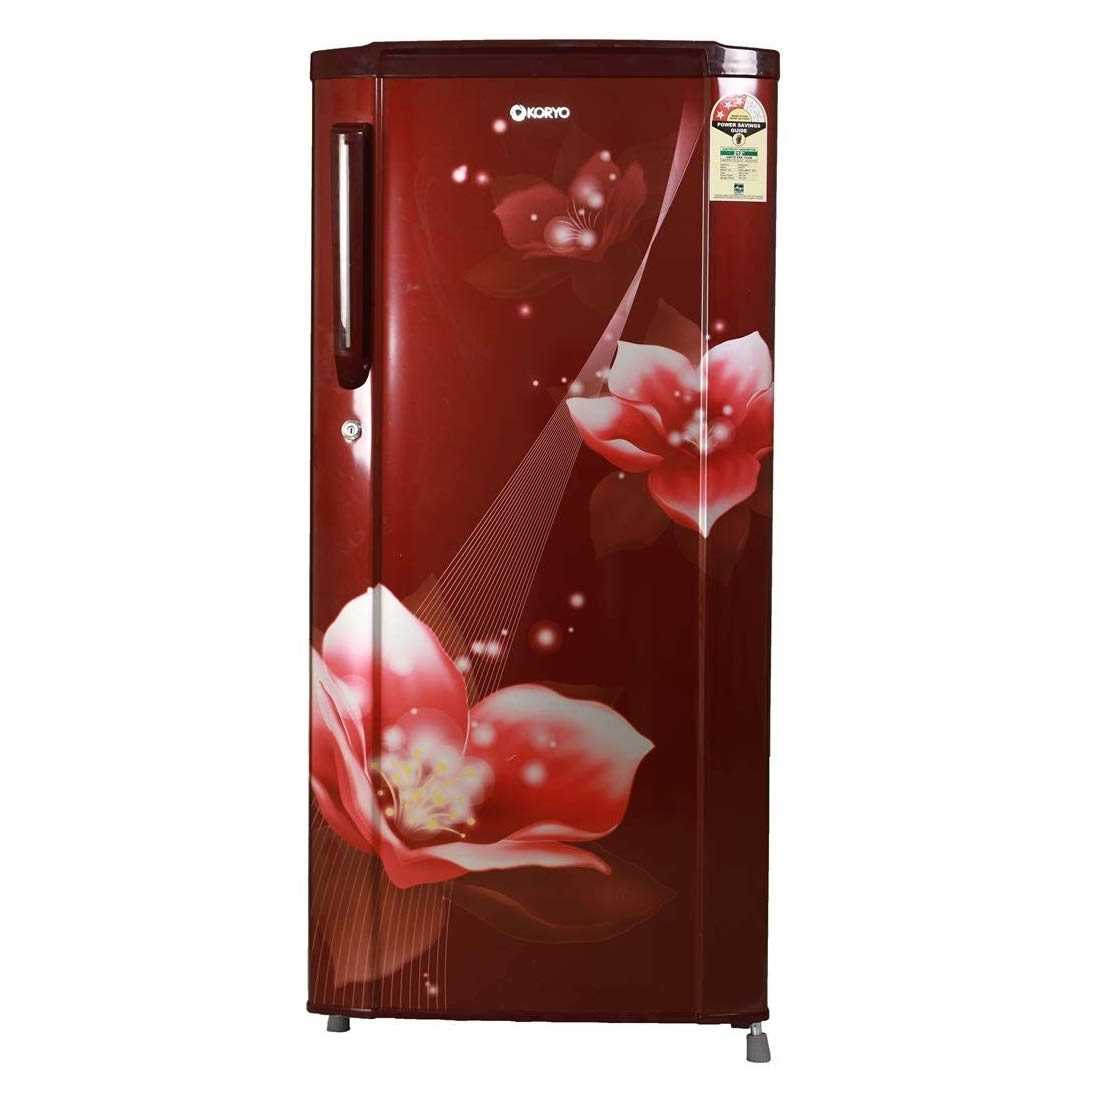 Koryo KDR215MR3F 190 Litre Single Door Direct Cool Refrigerator